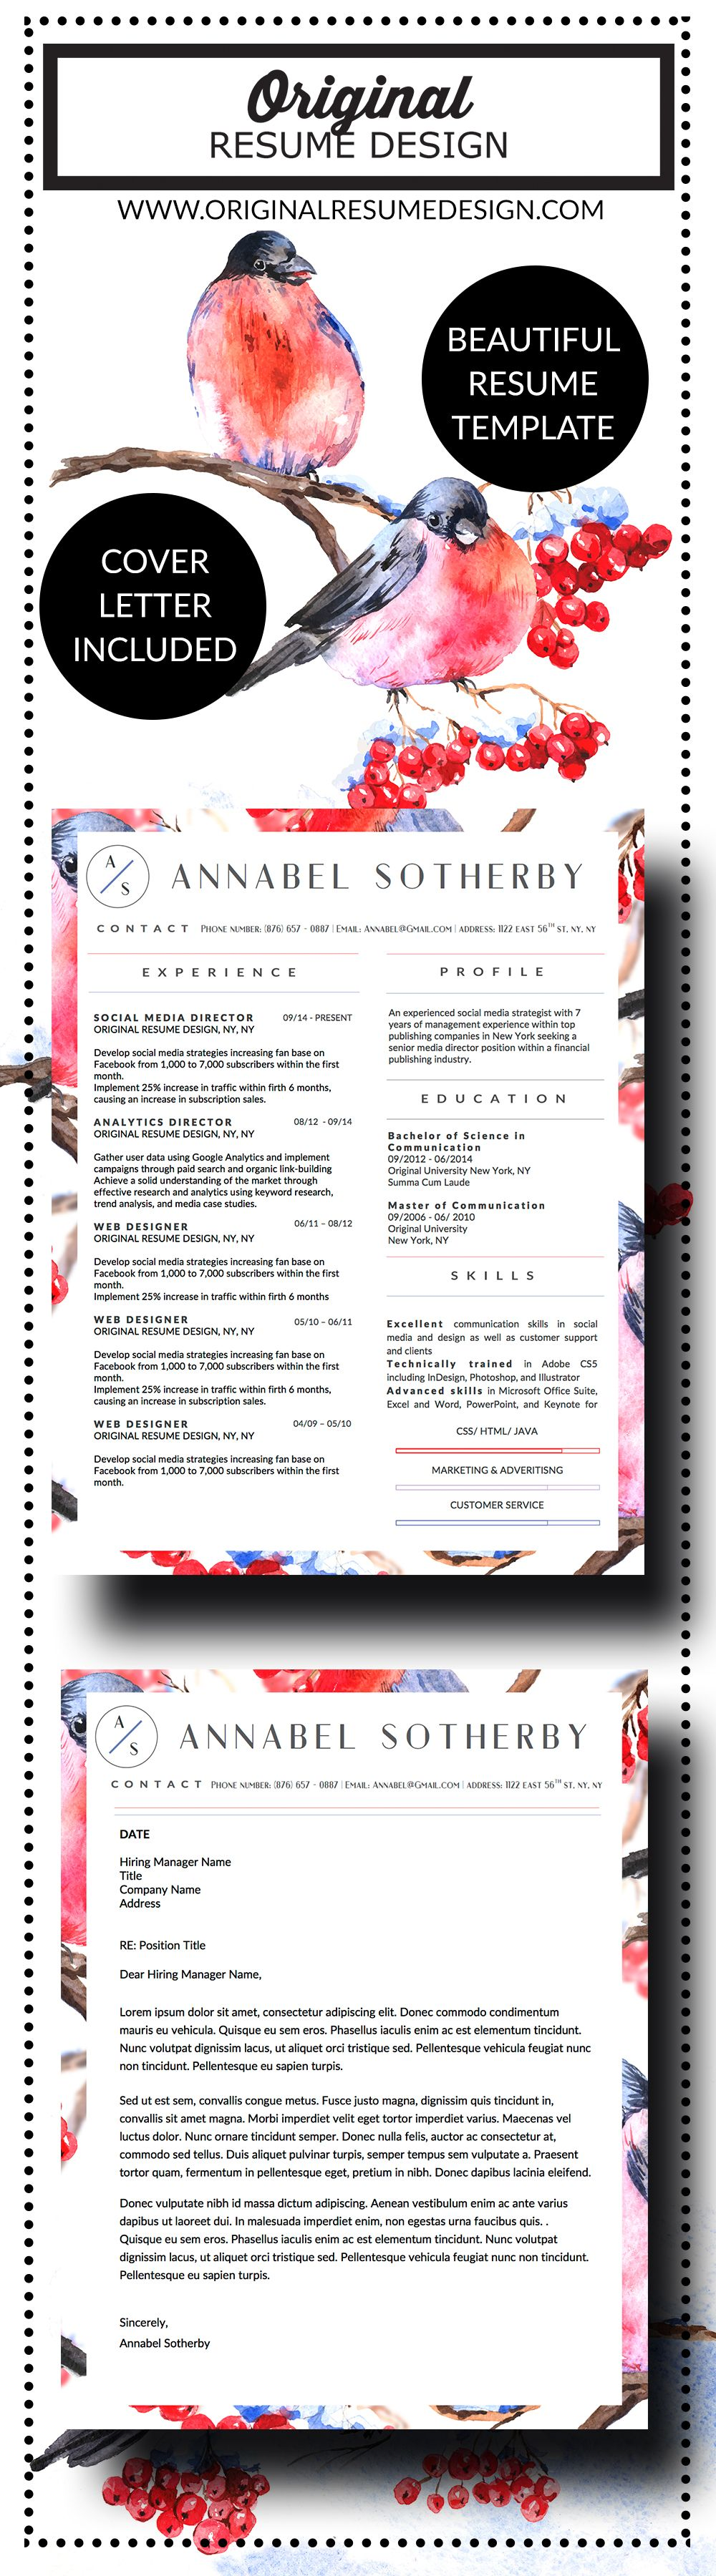 annabel sotherby beautiful resume and cover letter